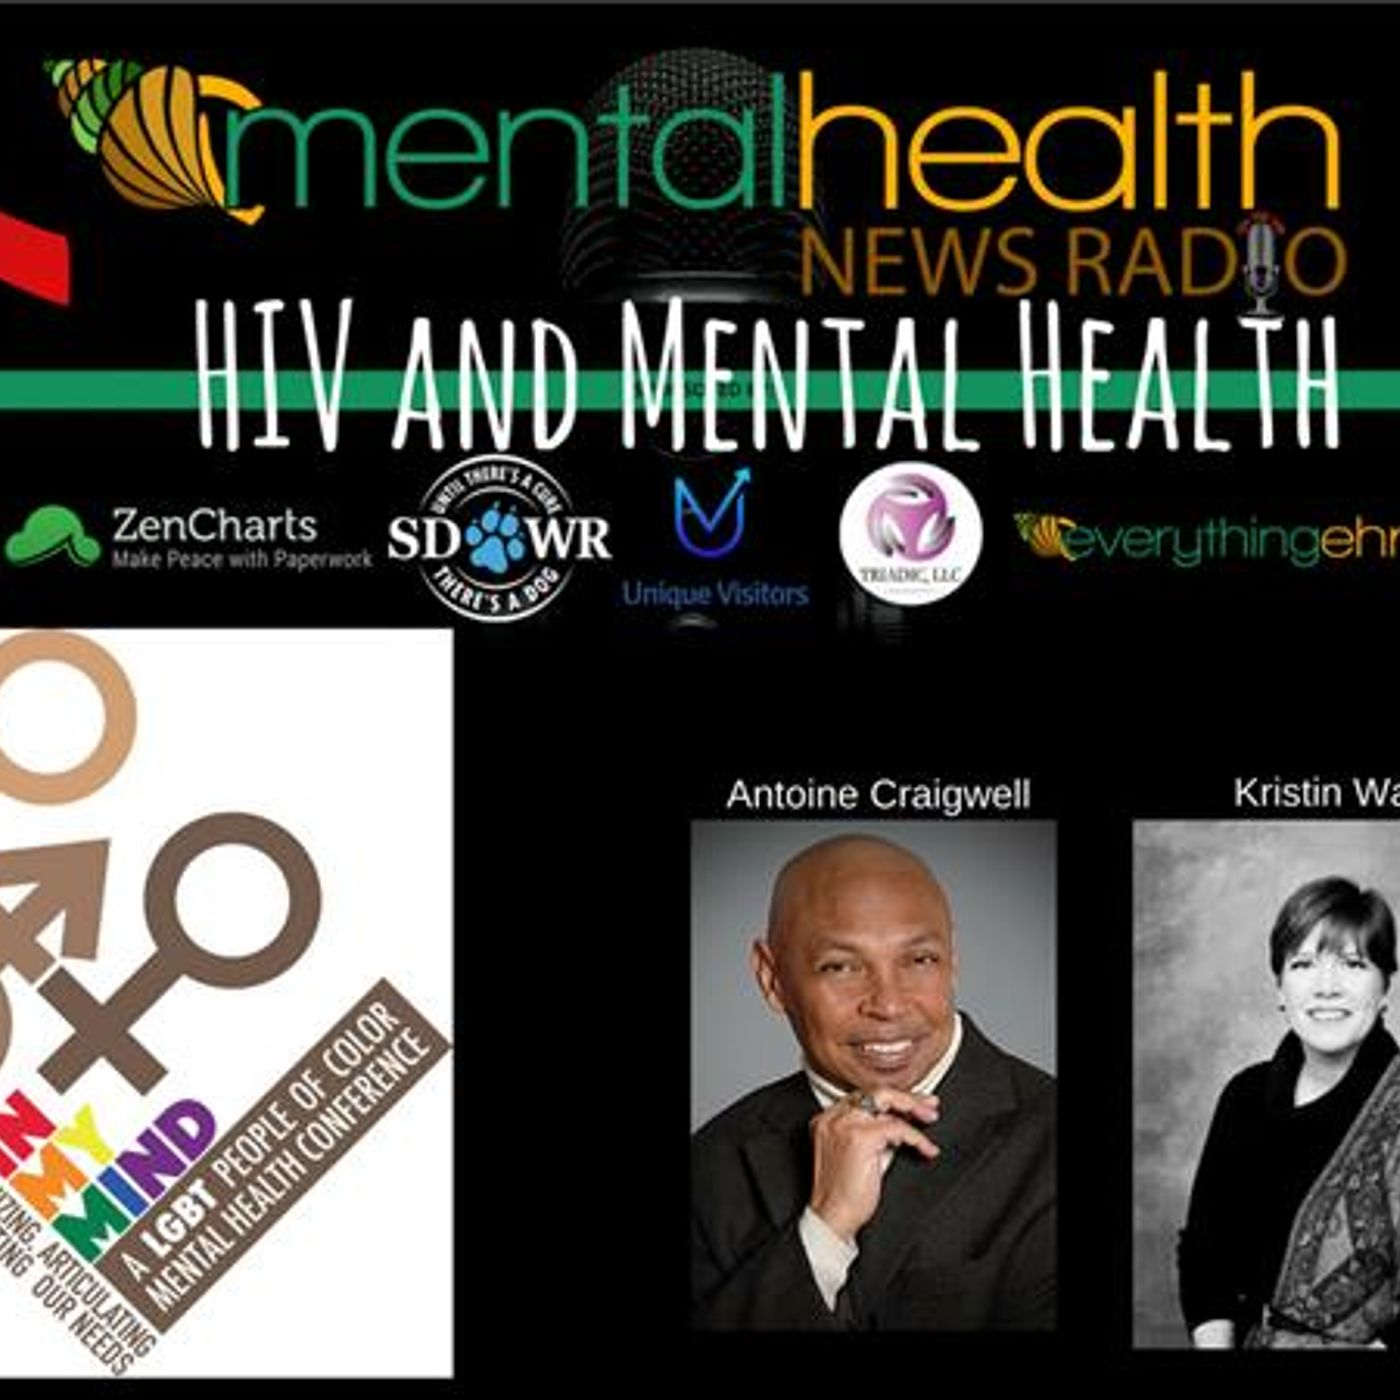 Mental Health News Radio - DBGM In My Mind Conference: HIV and Mental Health